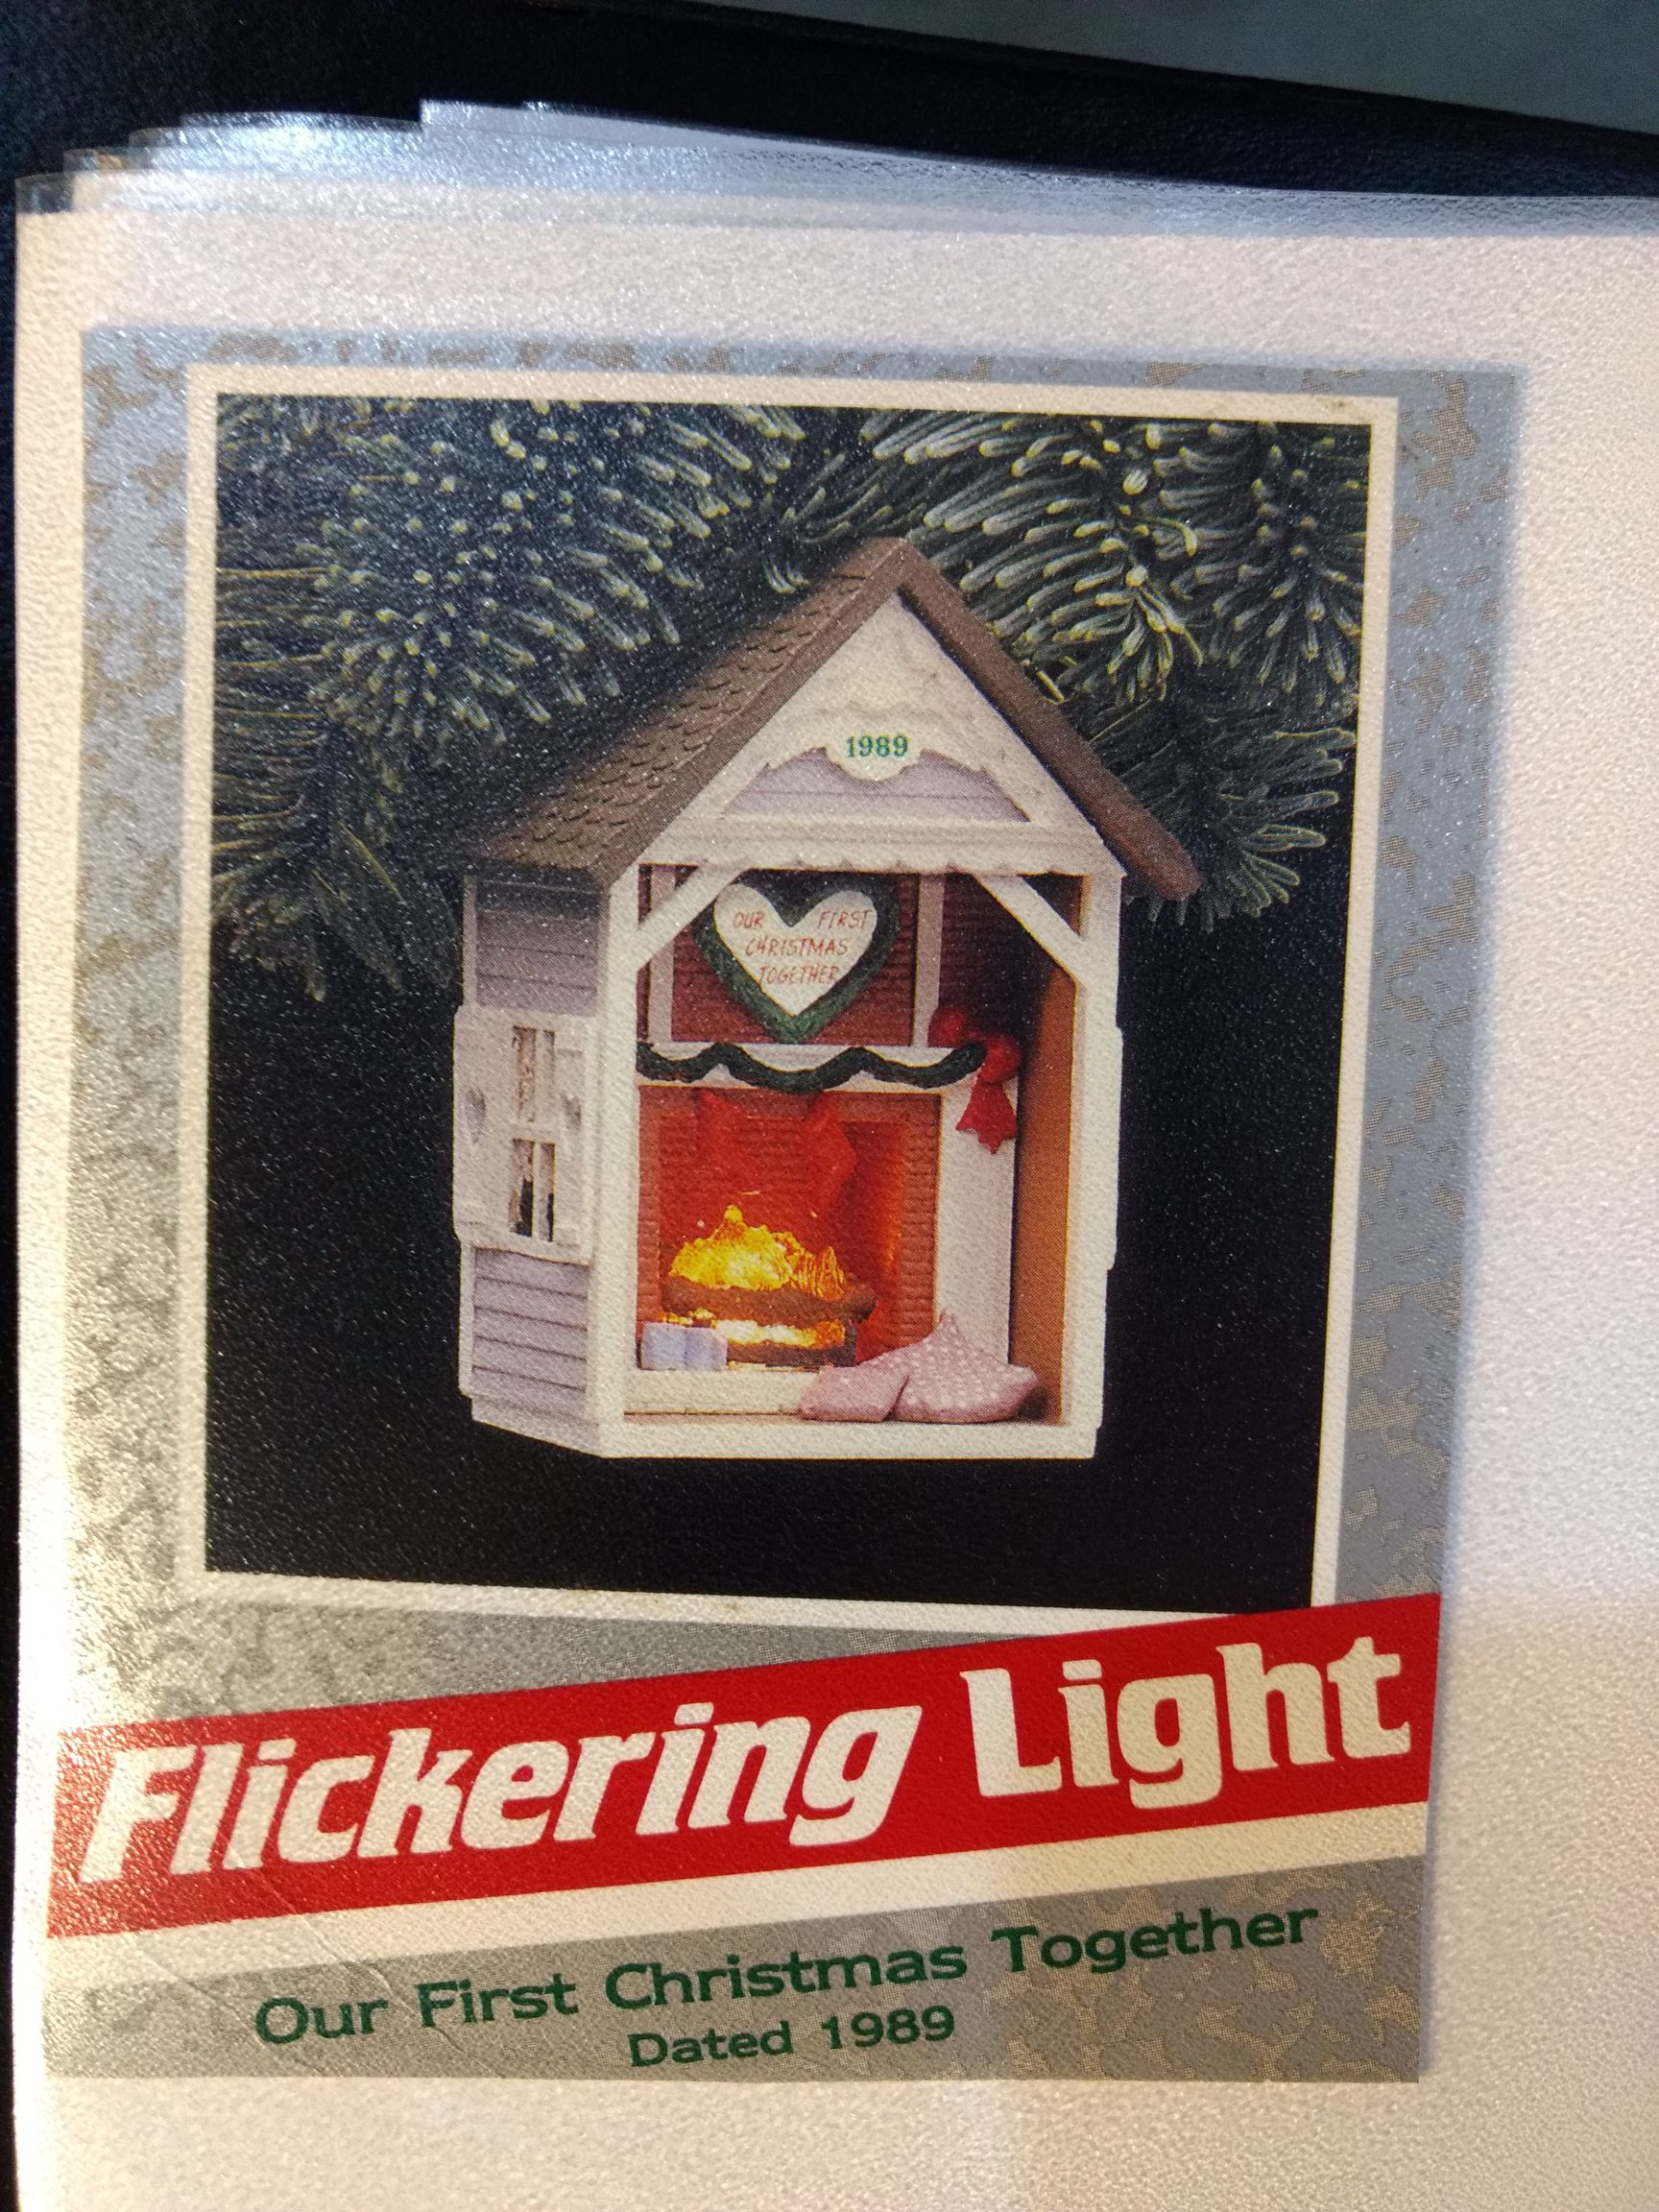 Buildings - Our First Christmas Together 1989 Ornament - Hallmark front image (front cover)